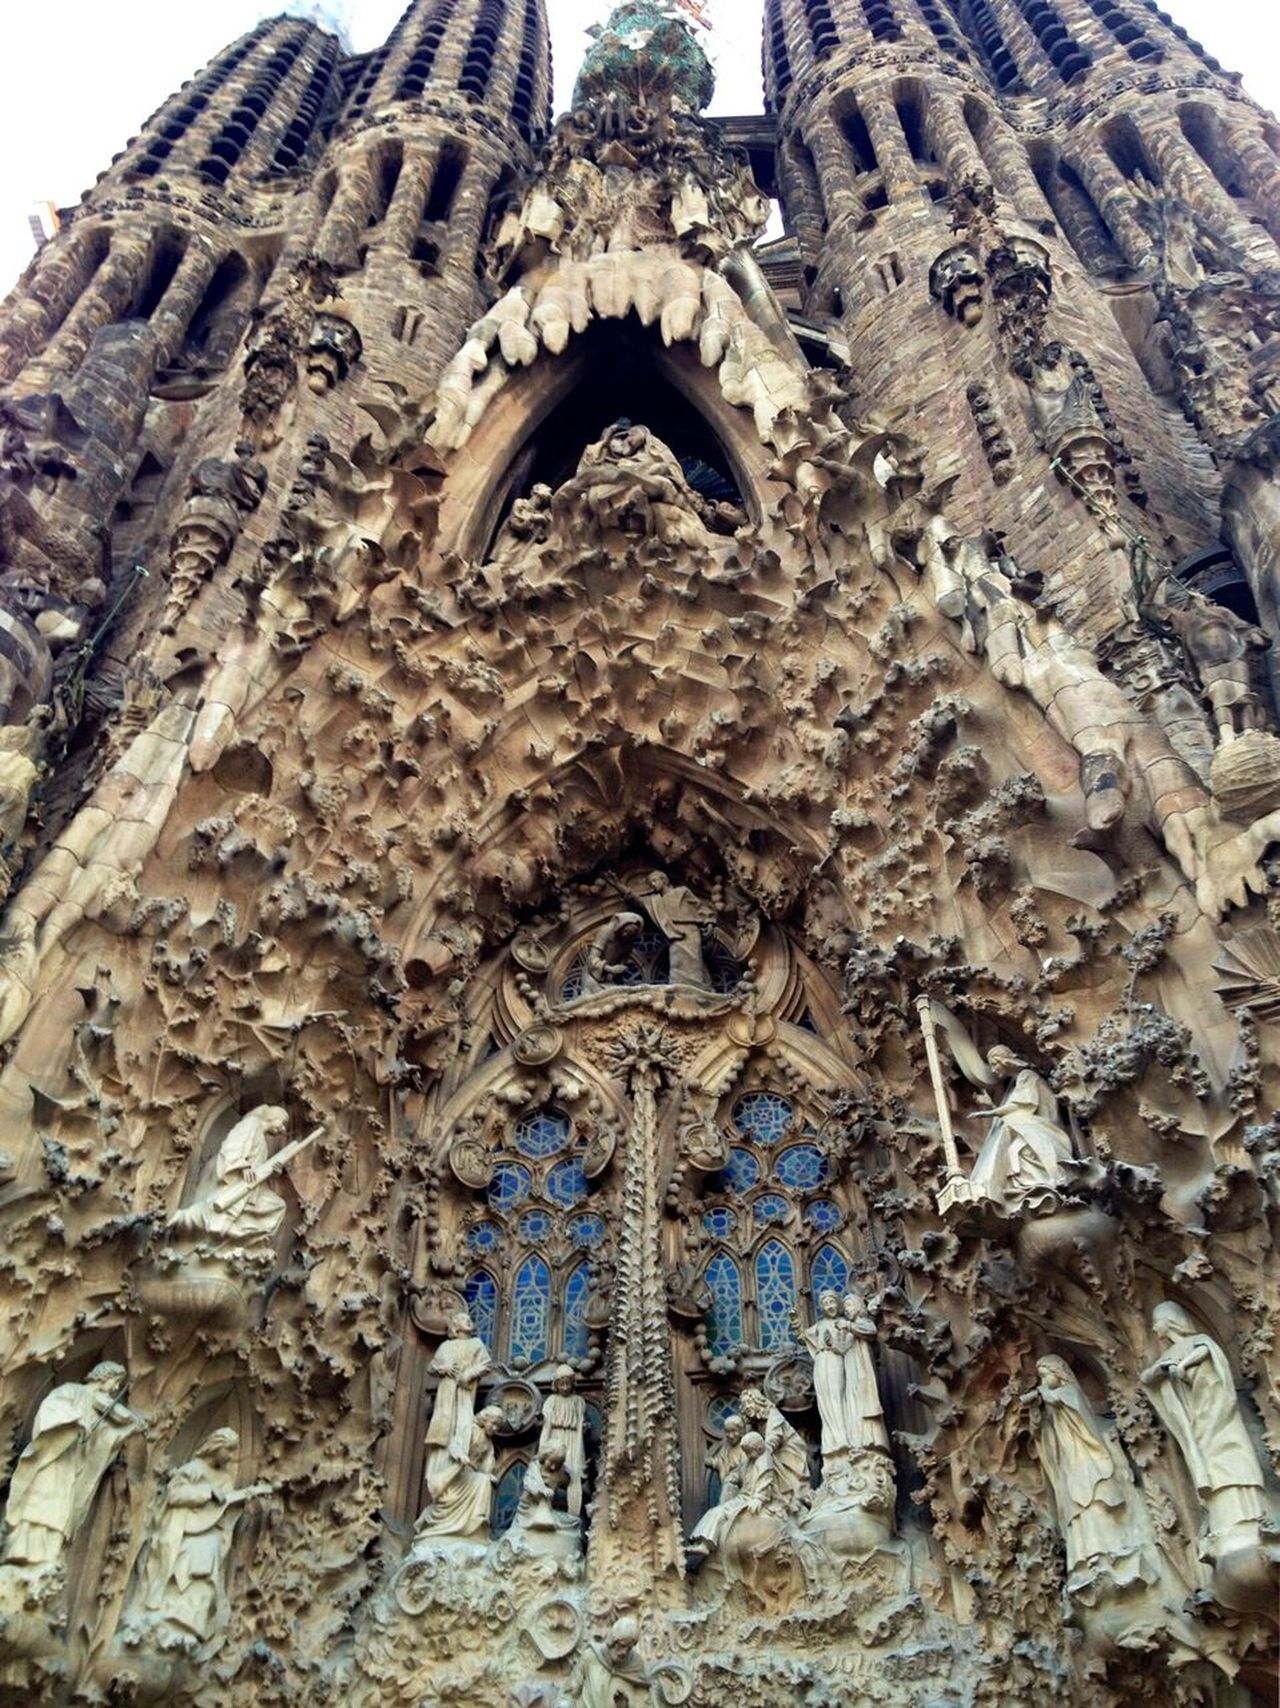 Sagrada Familia Gaudi Barcelona Religion Low Angle View Spirituality Place Of Worship No People Sculpture Statue Architecture History EyeEm Gallery EyeEm Built Structure Close-up Outdoors The Architect - 2017 EyeEm Awards EyeEmNewHere